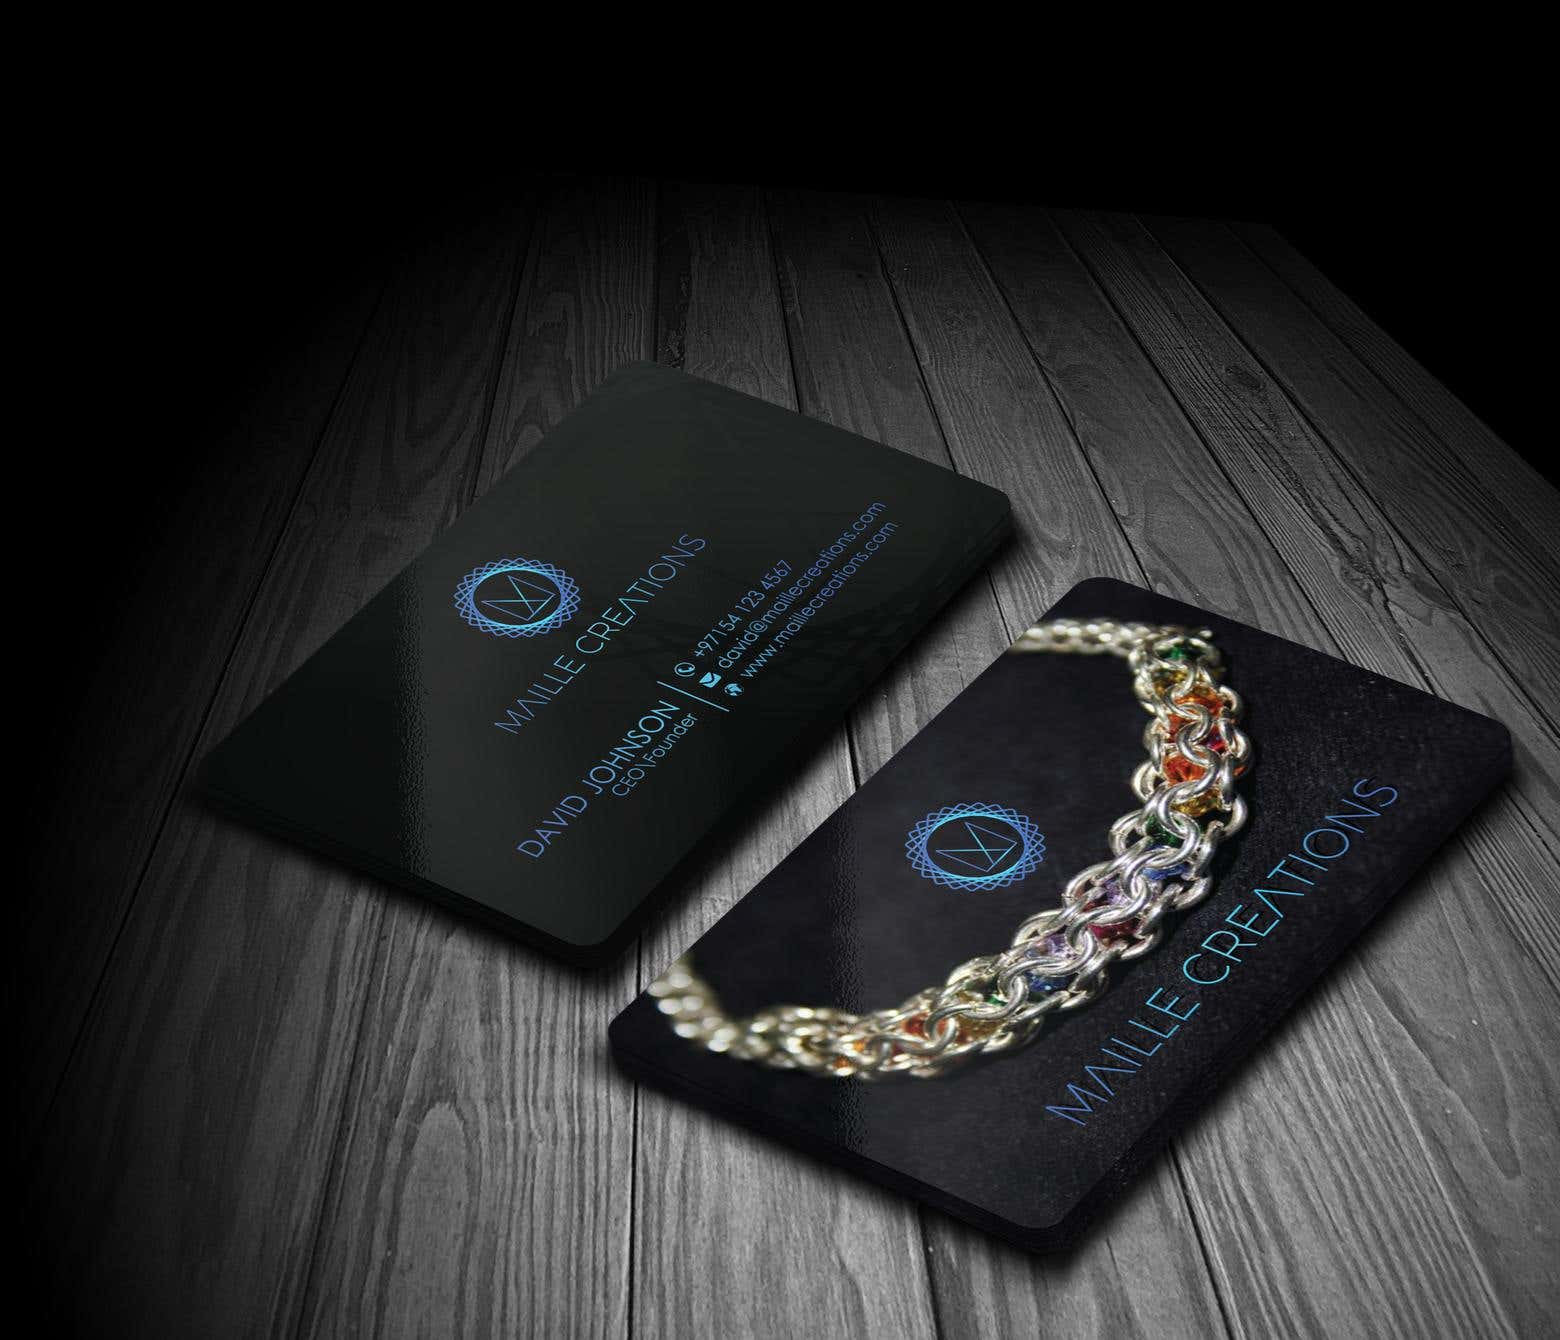 Design a business card for a hobby jewelry business freelancershowcase design a business card for a hobby jewelry business colourmoves